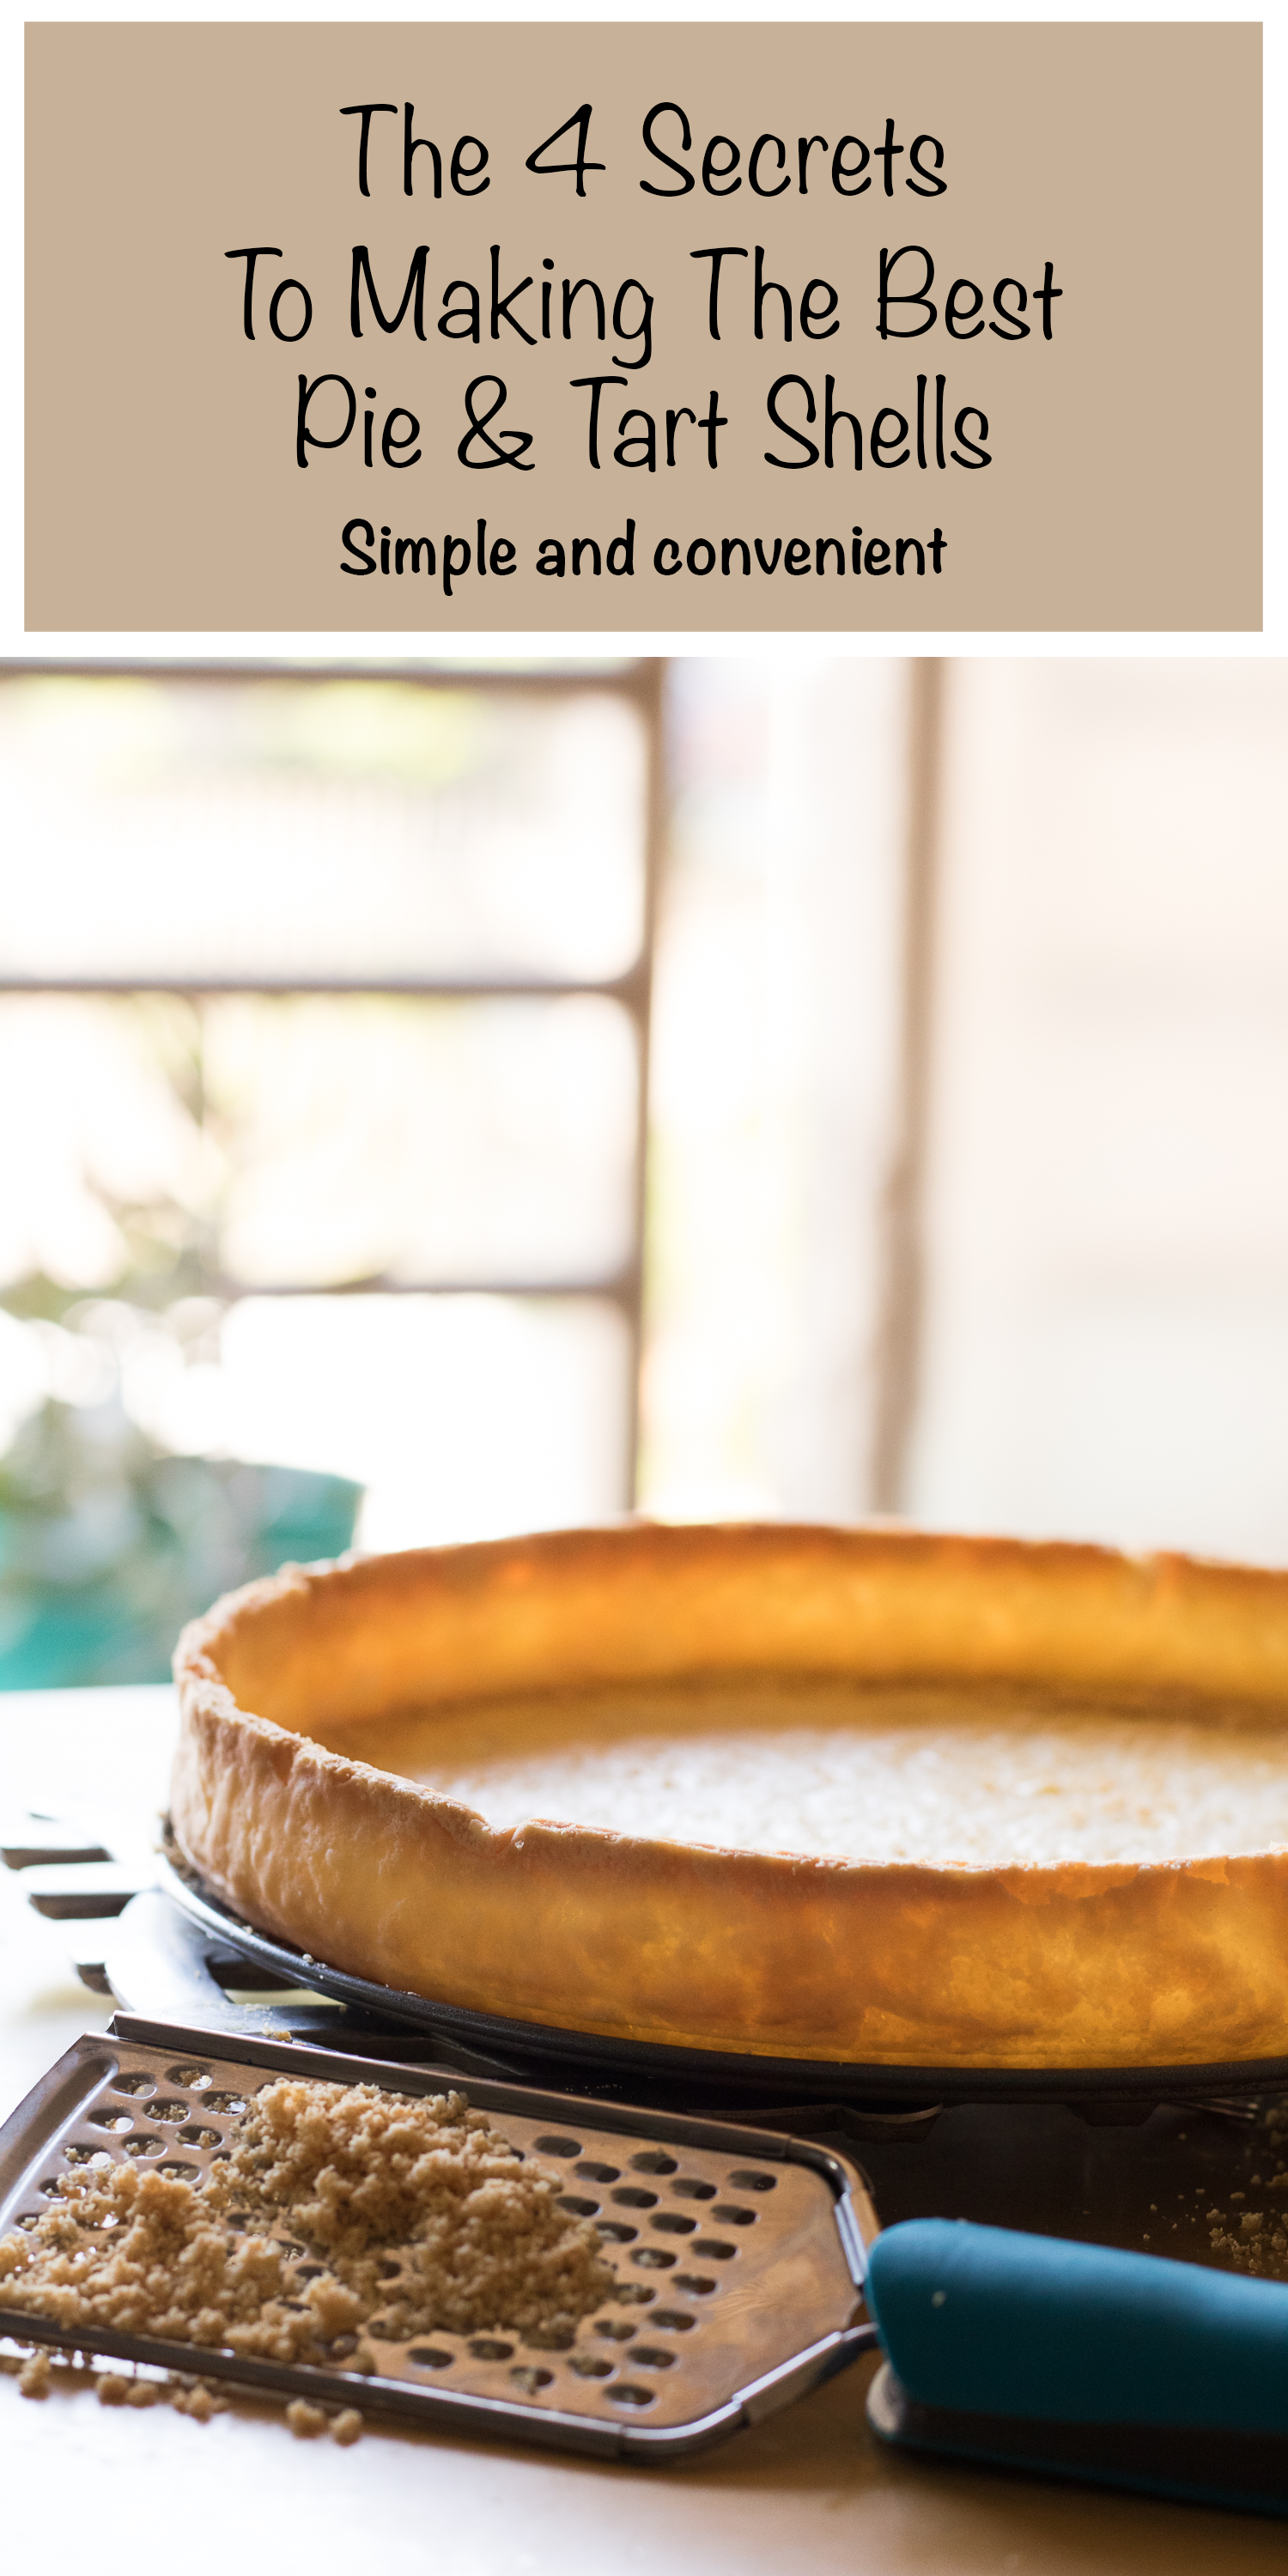 pinterest the four secrets to making the best pie and tart shells